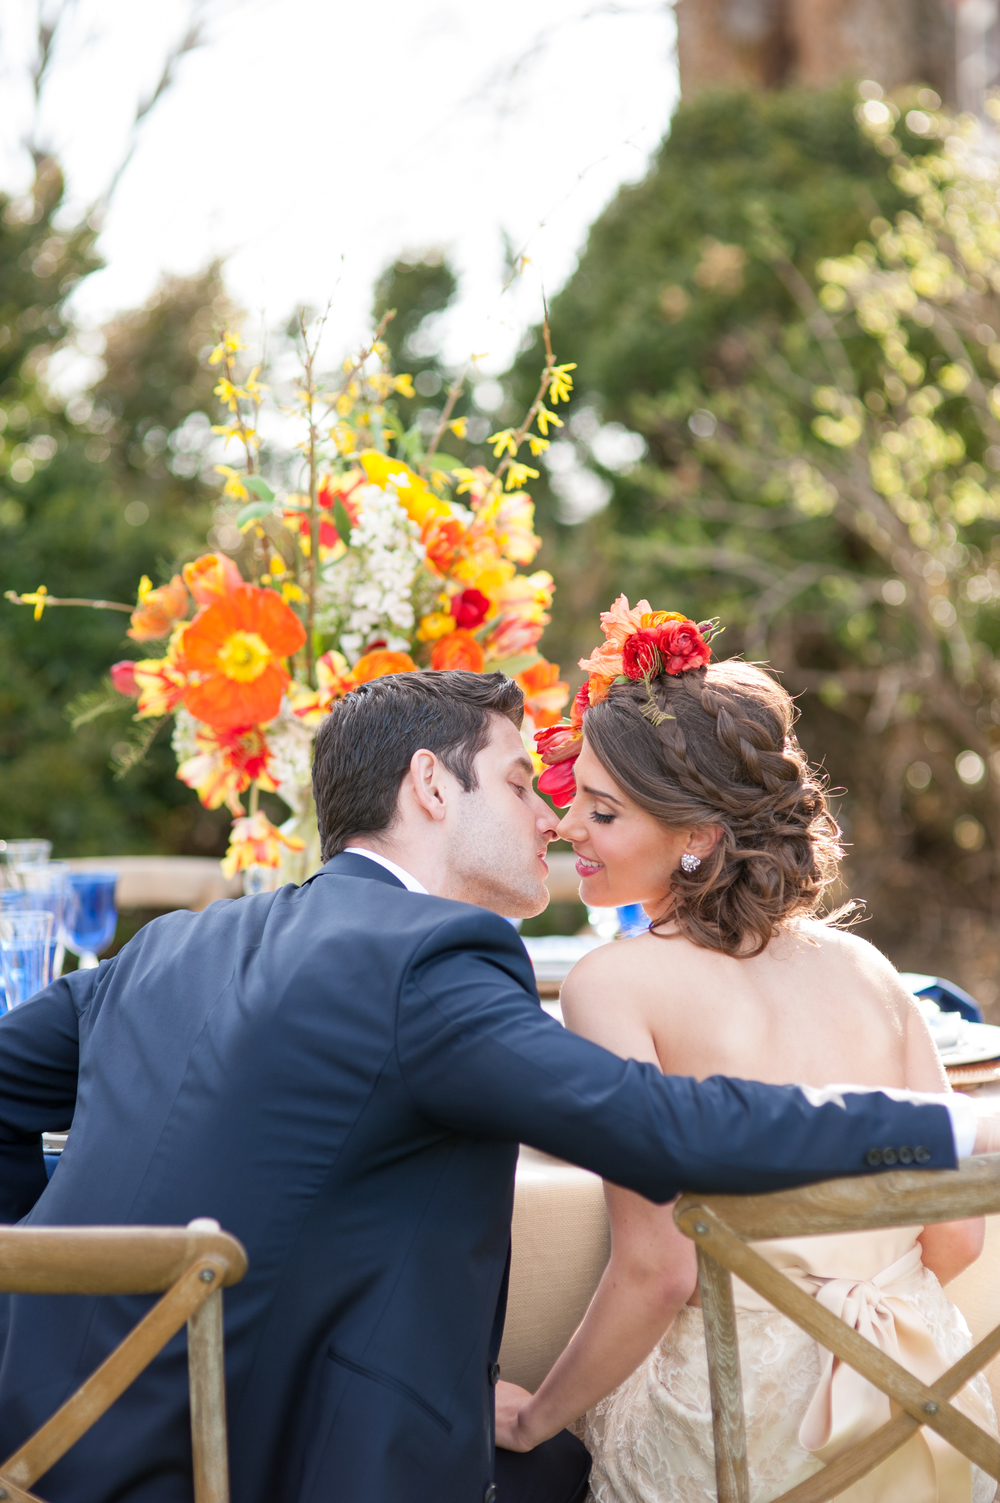 Vibrant Romantic Dutch Wedding at Woodlawn Manor-65.jpg